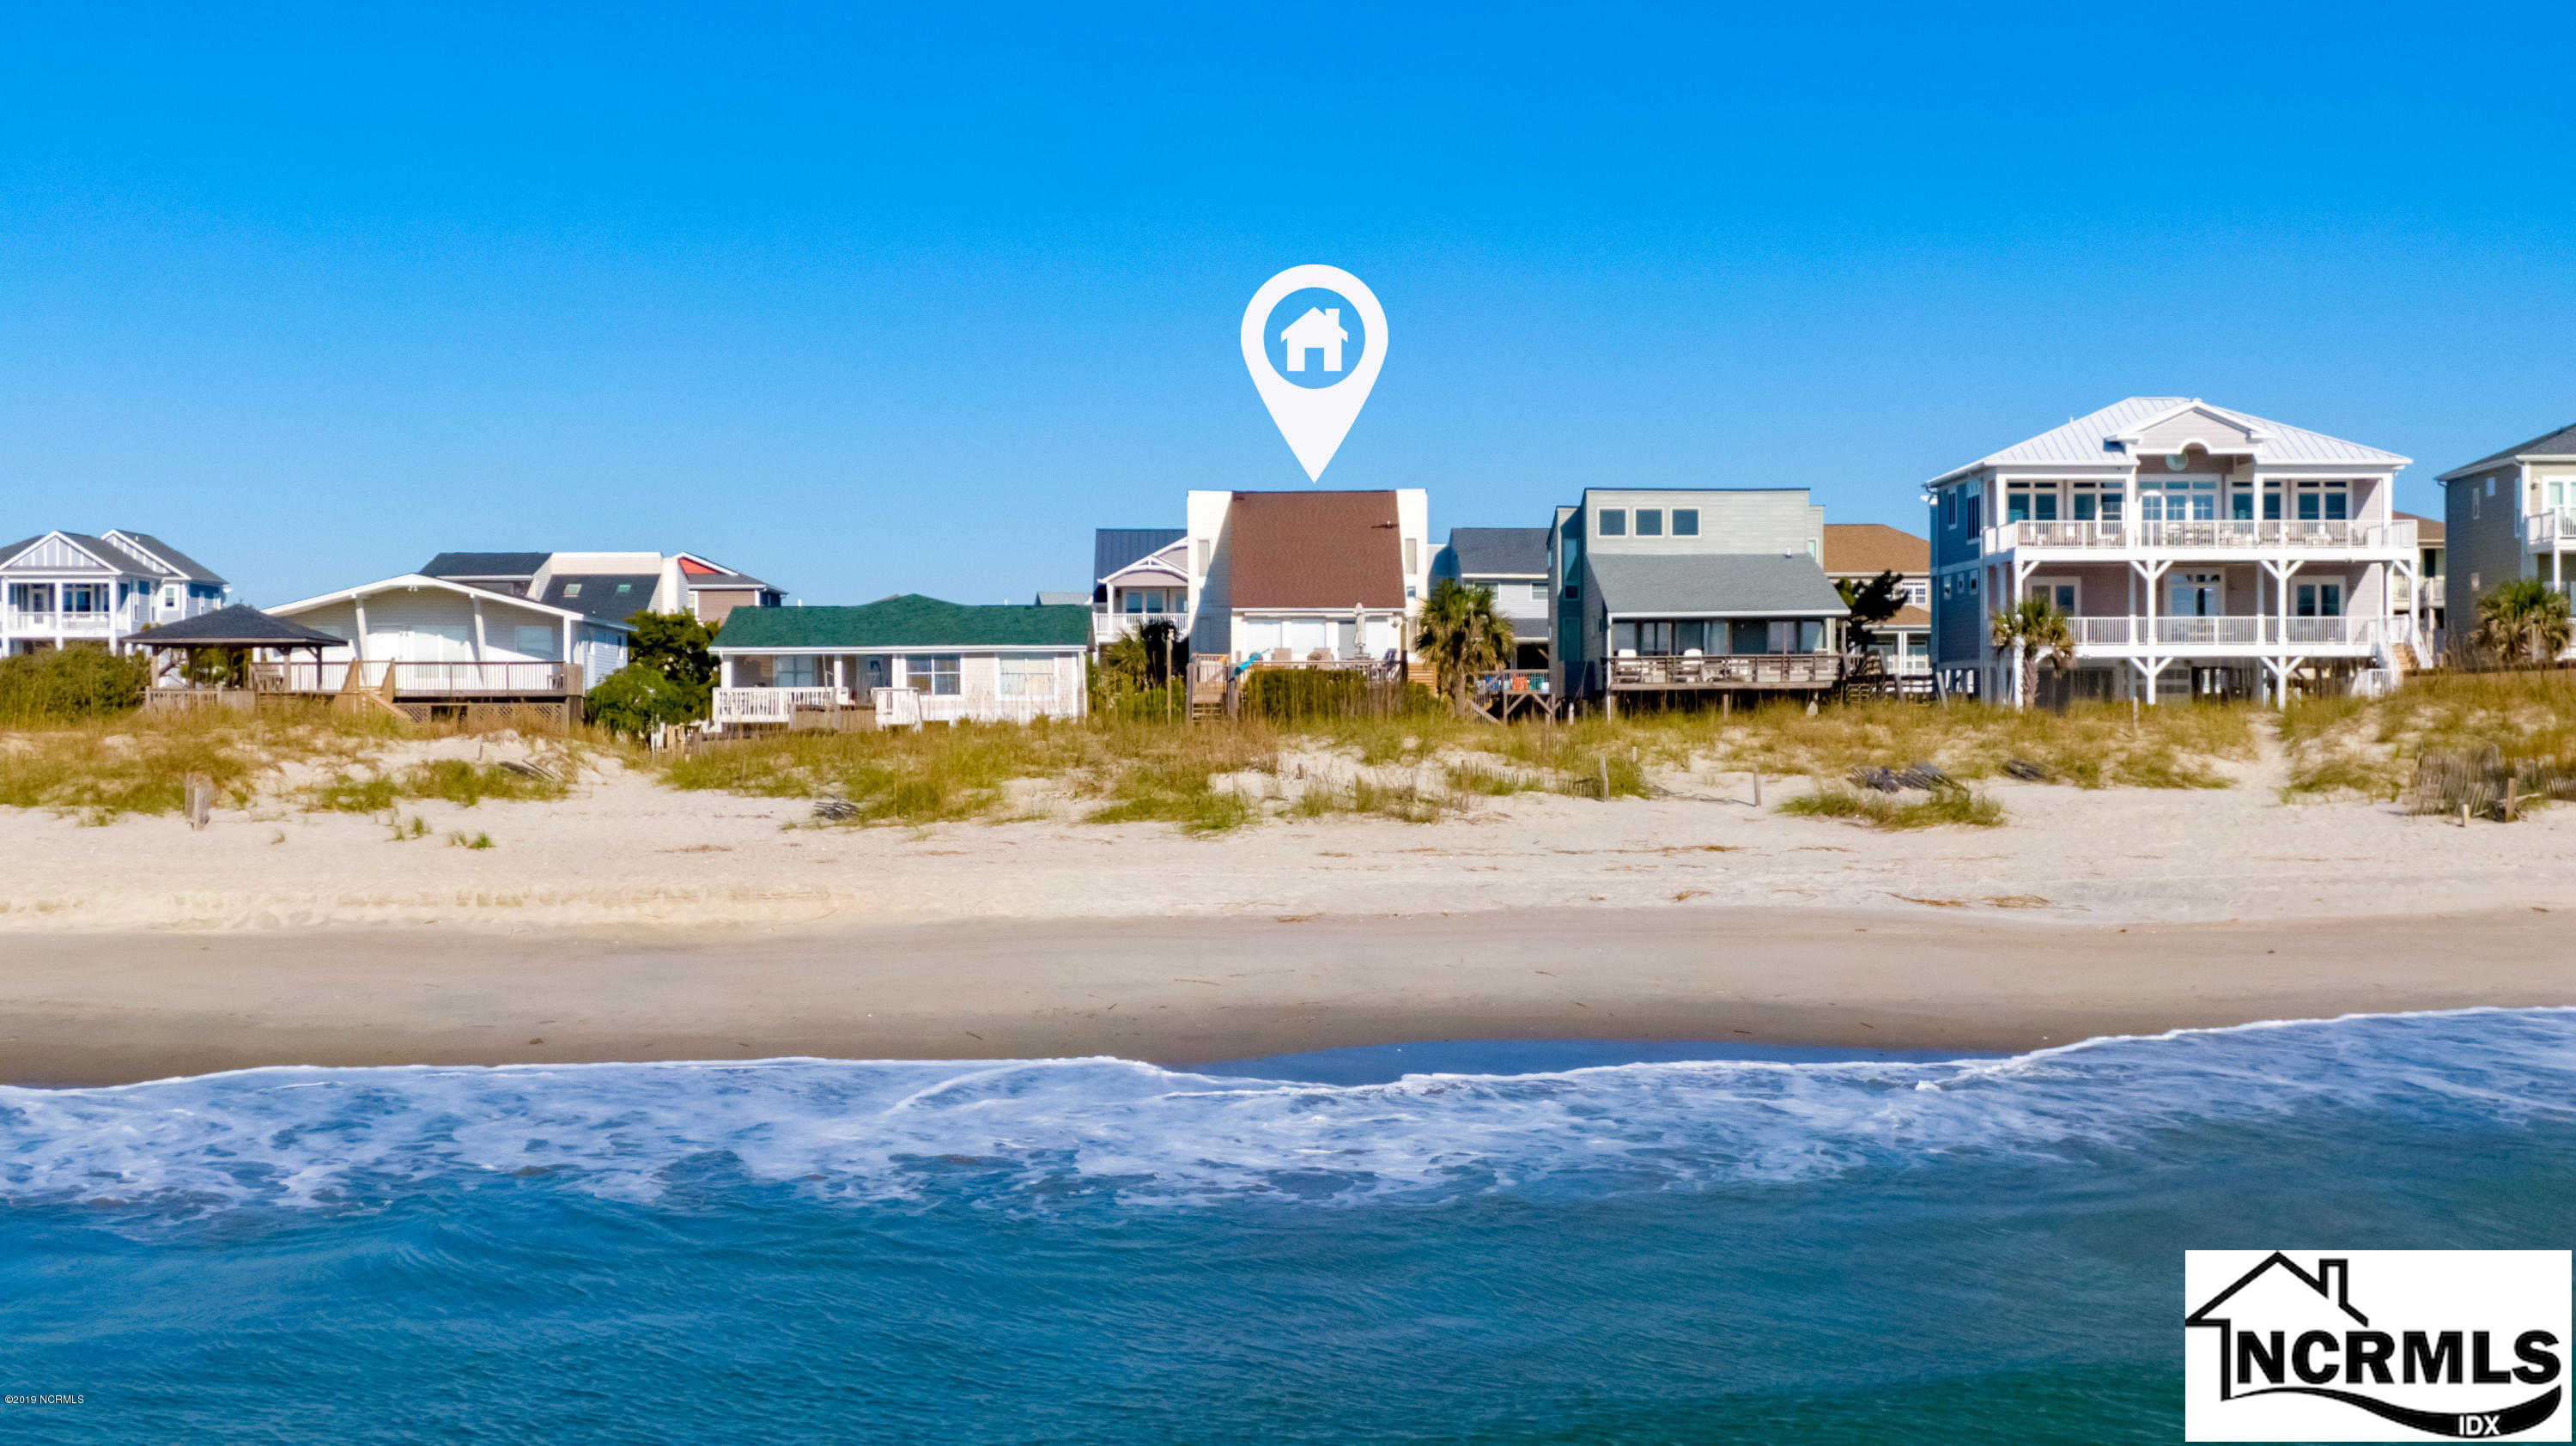 342 E First Street, Ocean Isle Beach, NC 28469 has an Open House on  Saturday, February 8, 2020 11:00 AM to 2:00 PM